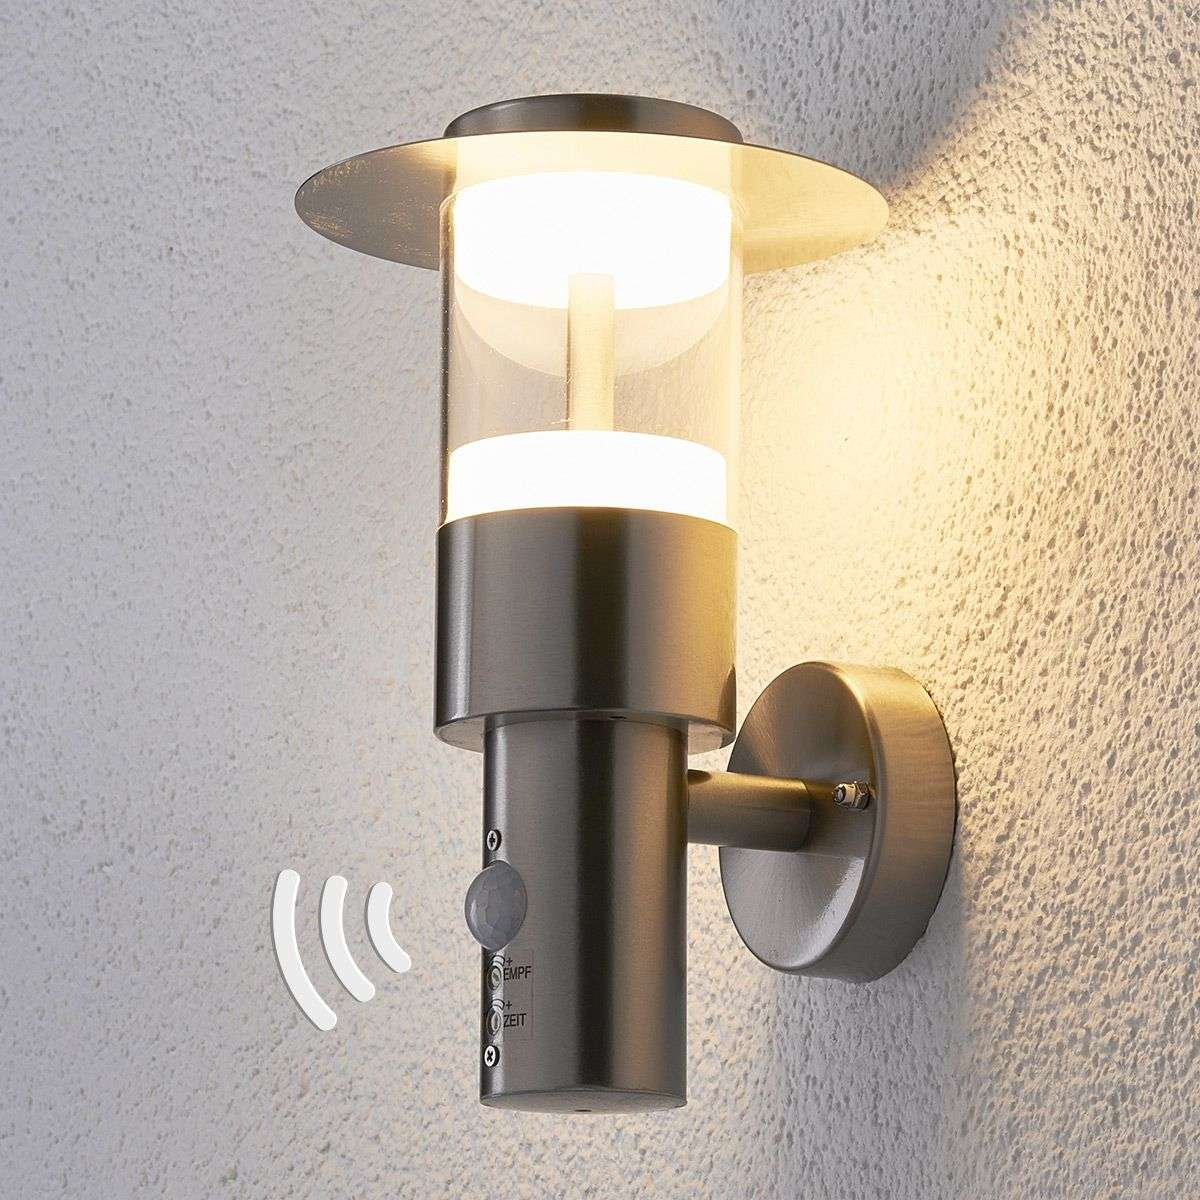 LED Presence Detector Outdoor Wall Light Anouk 9988030 31